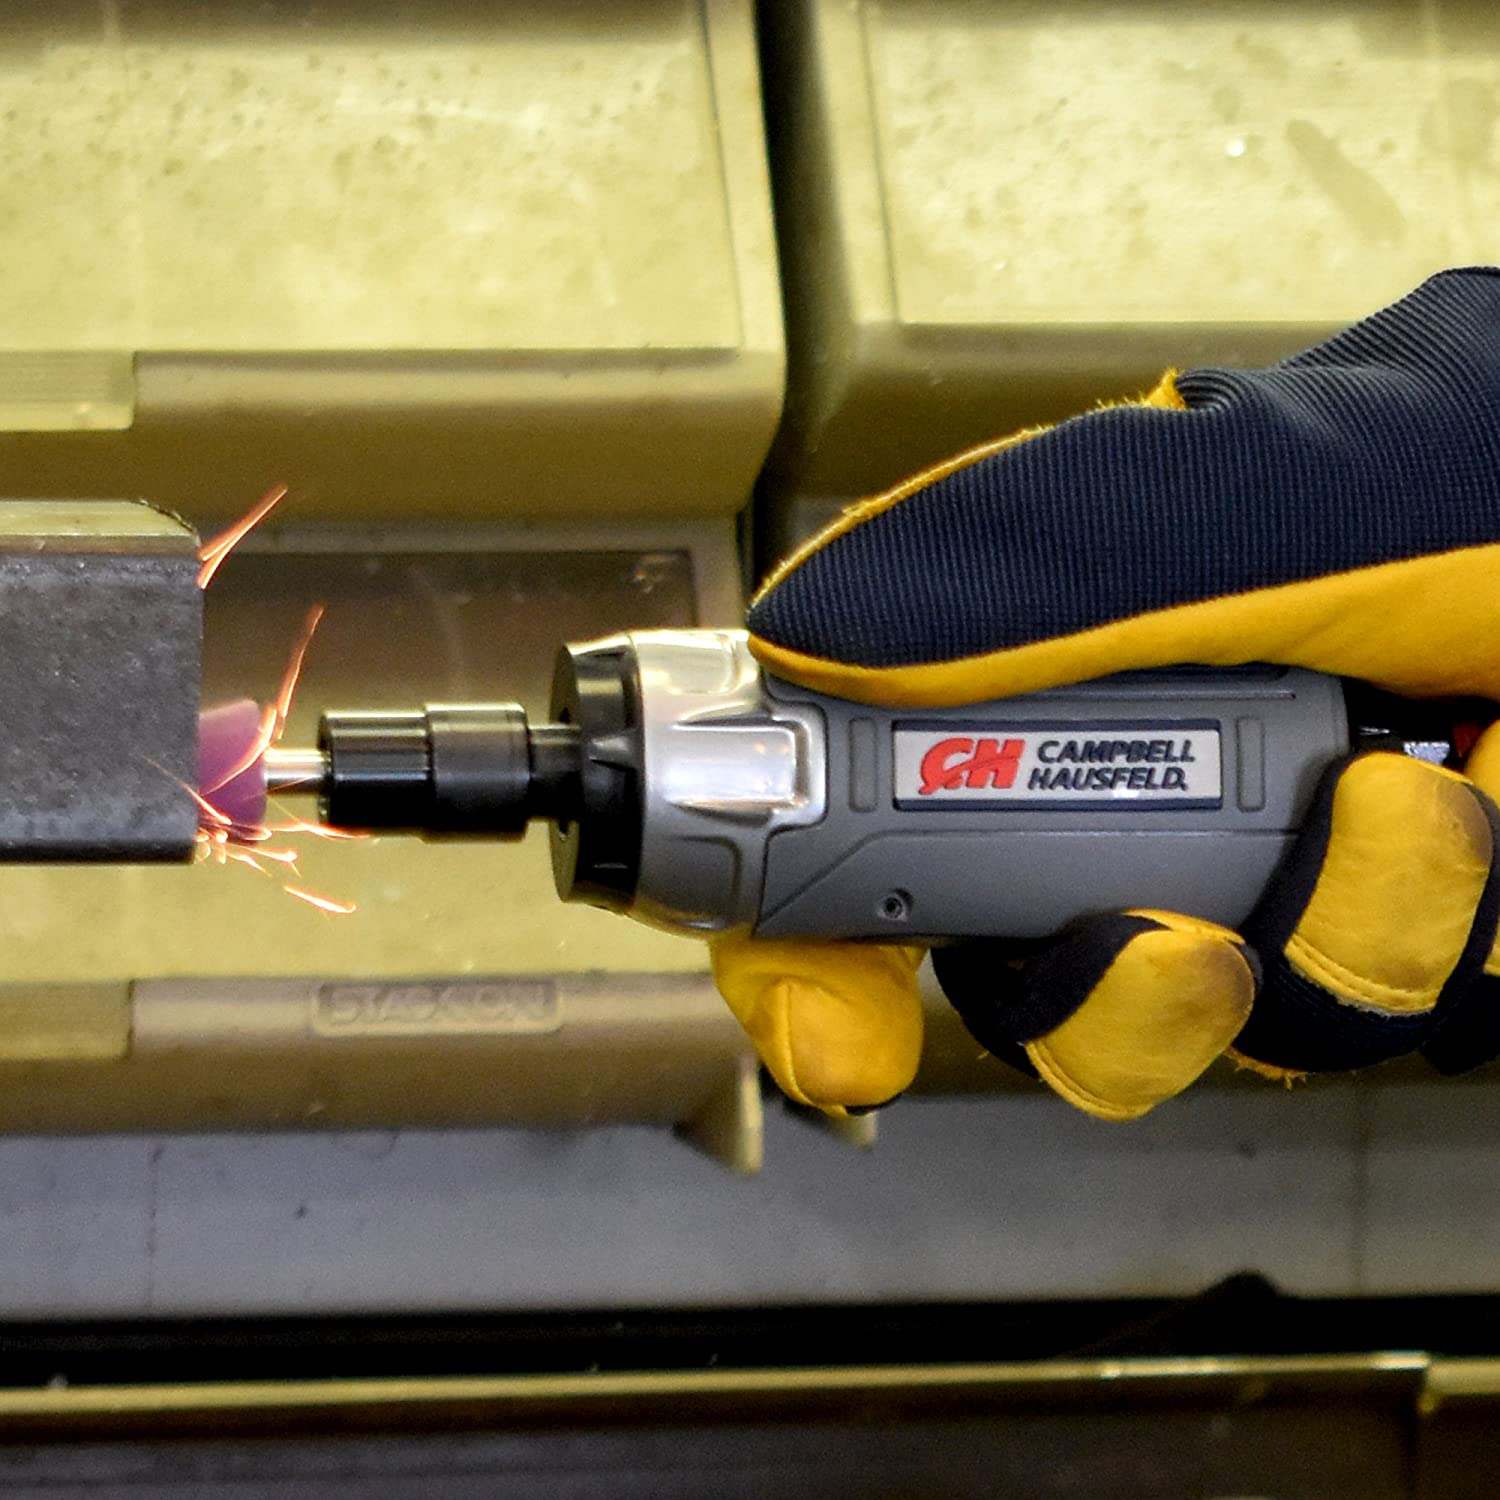 Campbell Hausfeld XT251000 Get Stuff Done Angle Die Grinder 20,000 RPM with Flow Adjustment